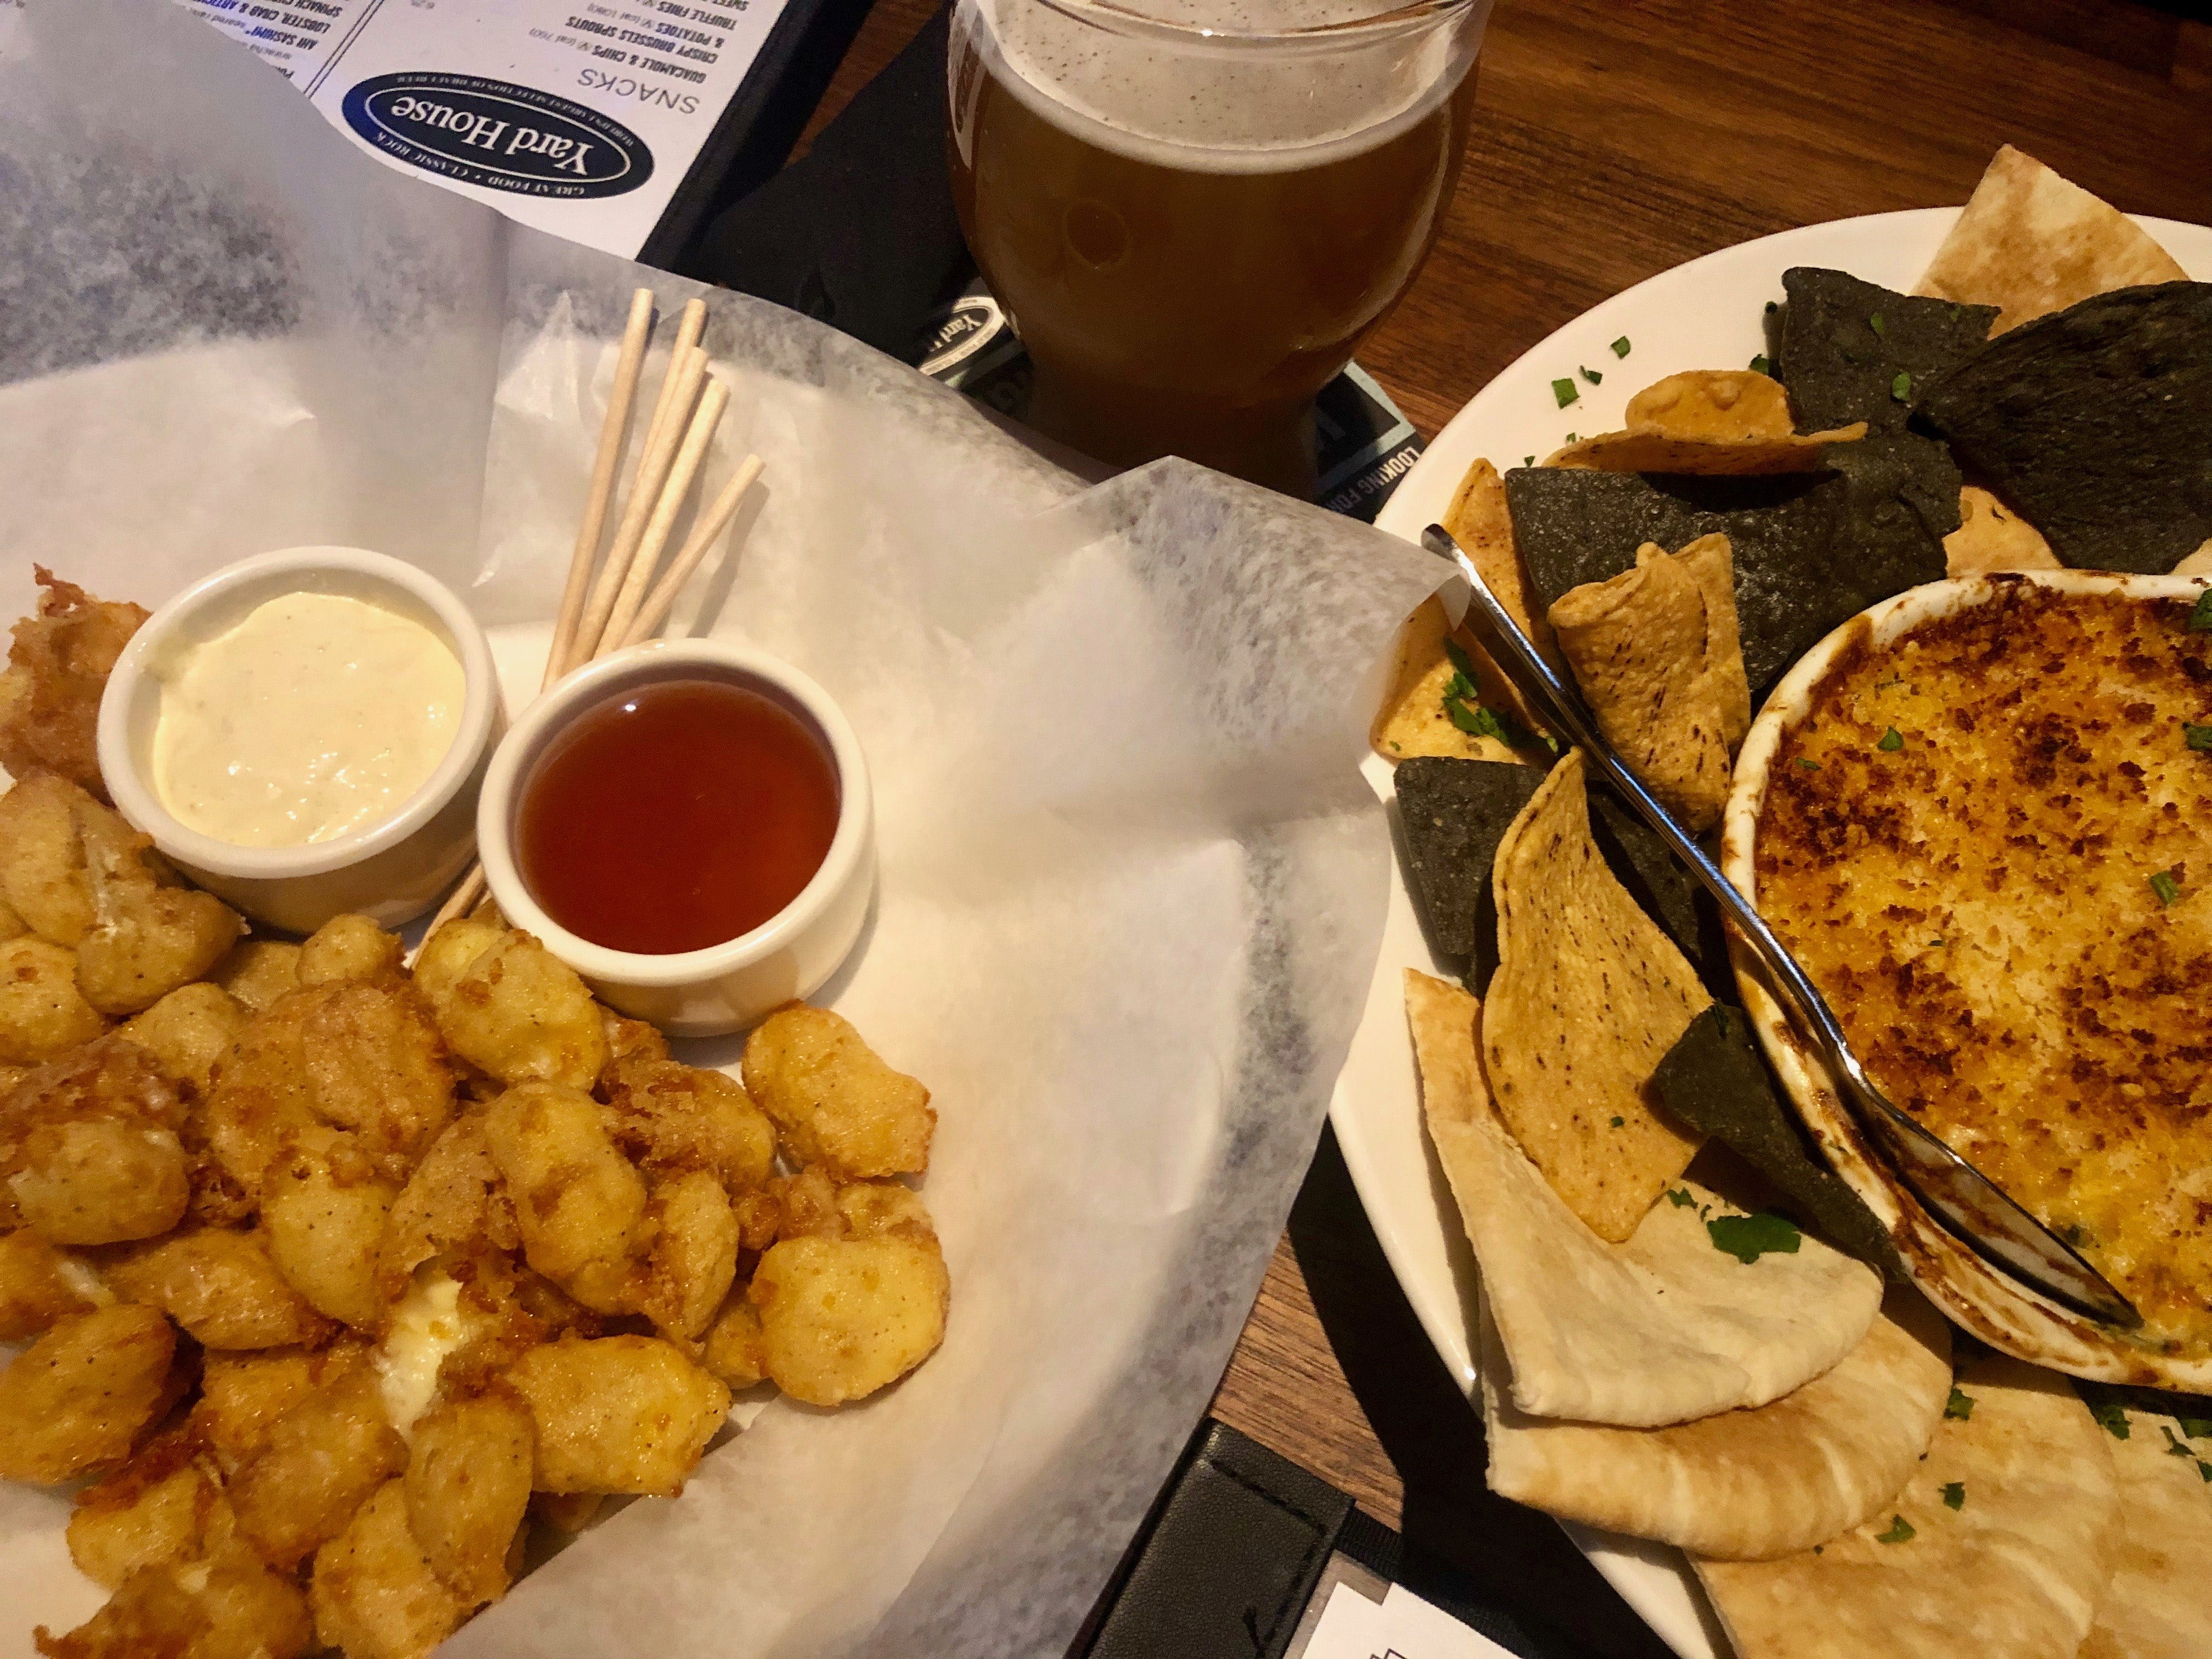 Wisconsin cheese curds and lobster, crab and artichoke dip from Yard House in Naples